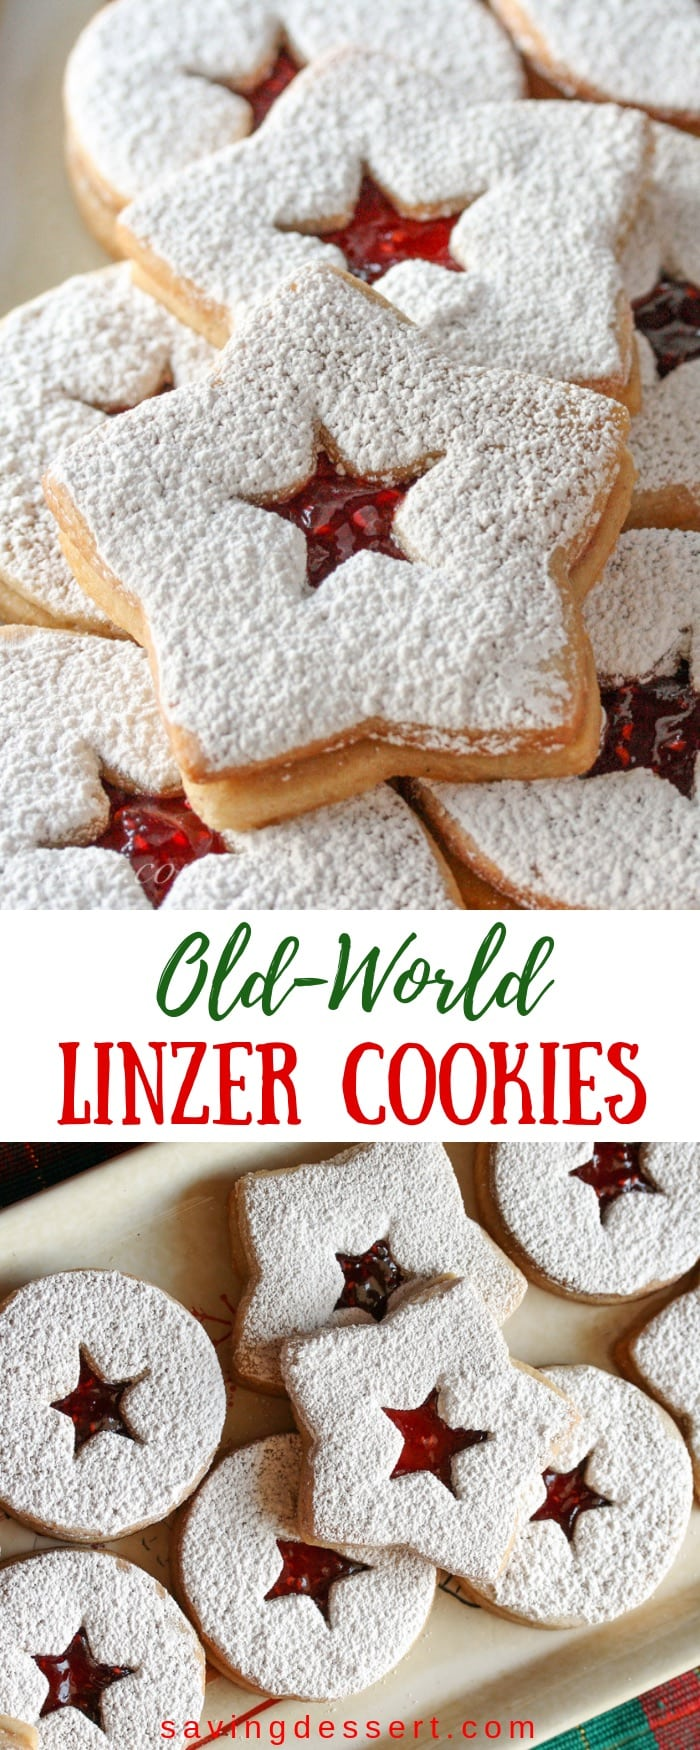 Old-World Linzer Cookies - a lovely little butter cookie with hints of cinnamon and lightly sweetened with jam. The perfect holiday treat! #savingroomfordessert #linzercookies #holidaycookies #Christmascookies #linzer #oldworldlinzer #holidaybaking